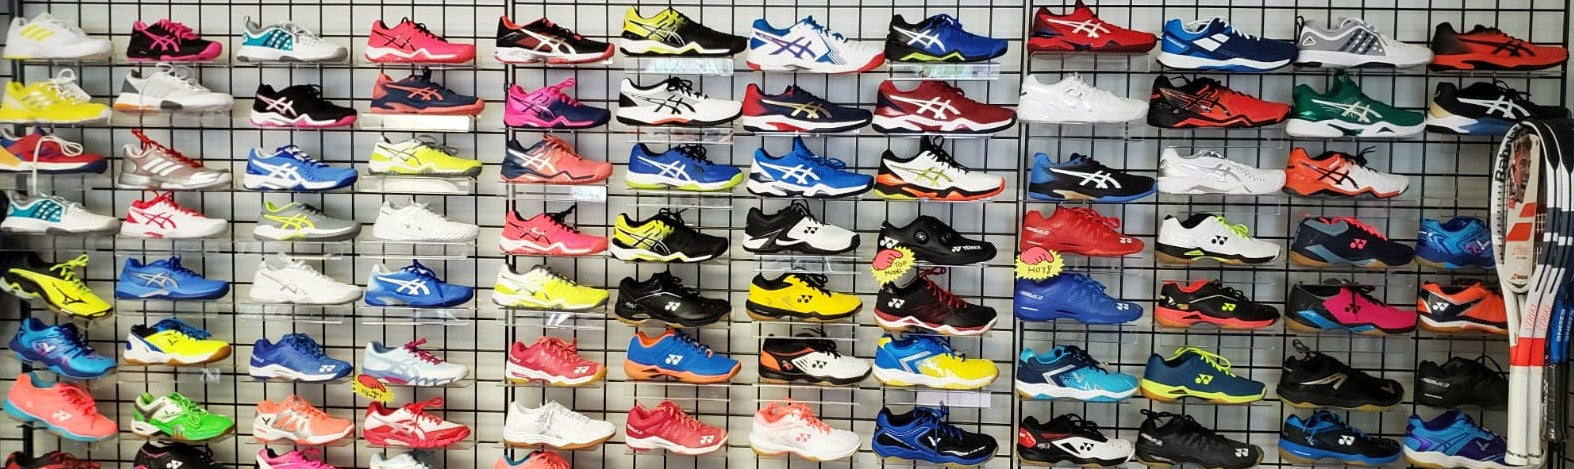 T1 SPORTS Tennis Shoe Store in Canada